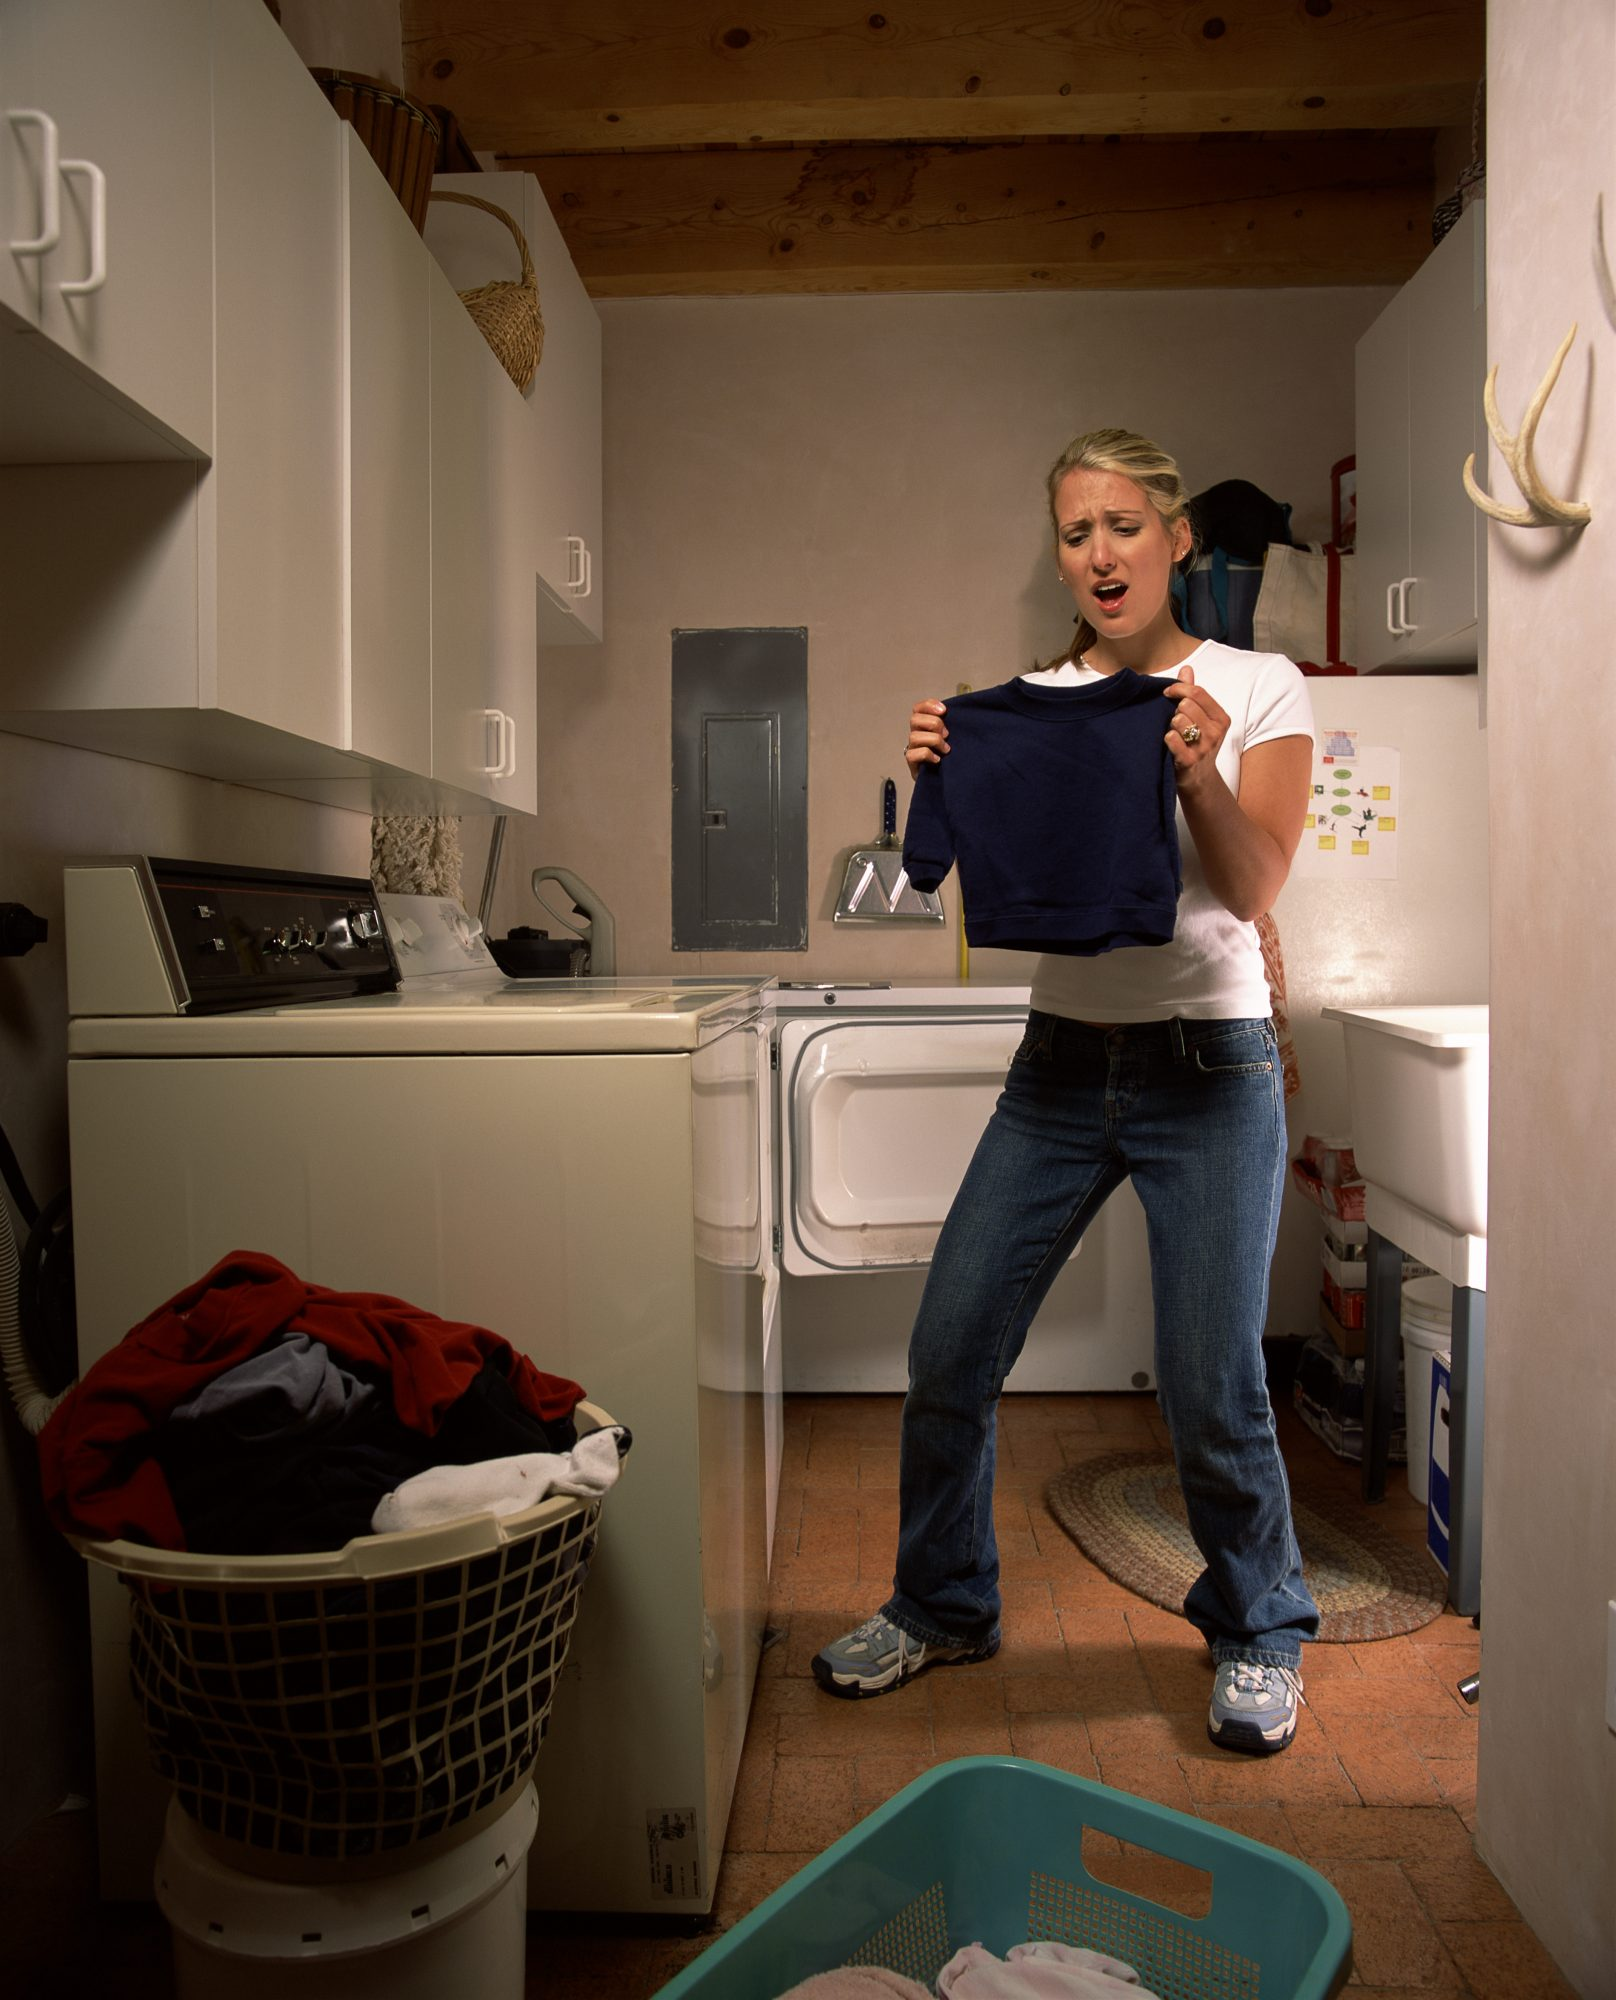 Woman Shrinks Sweater in Laundry